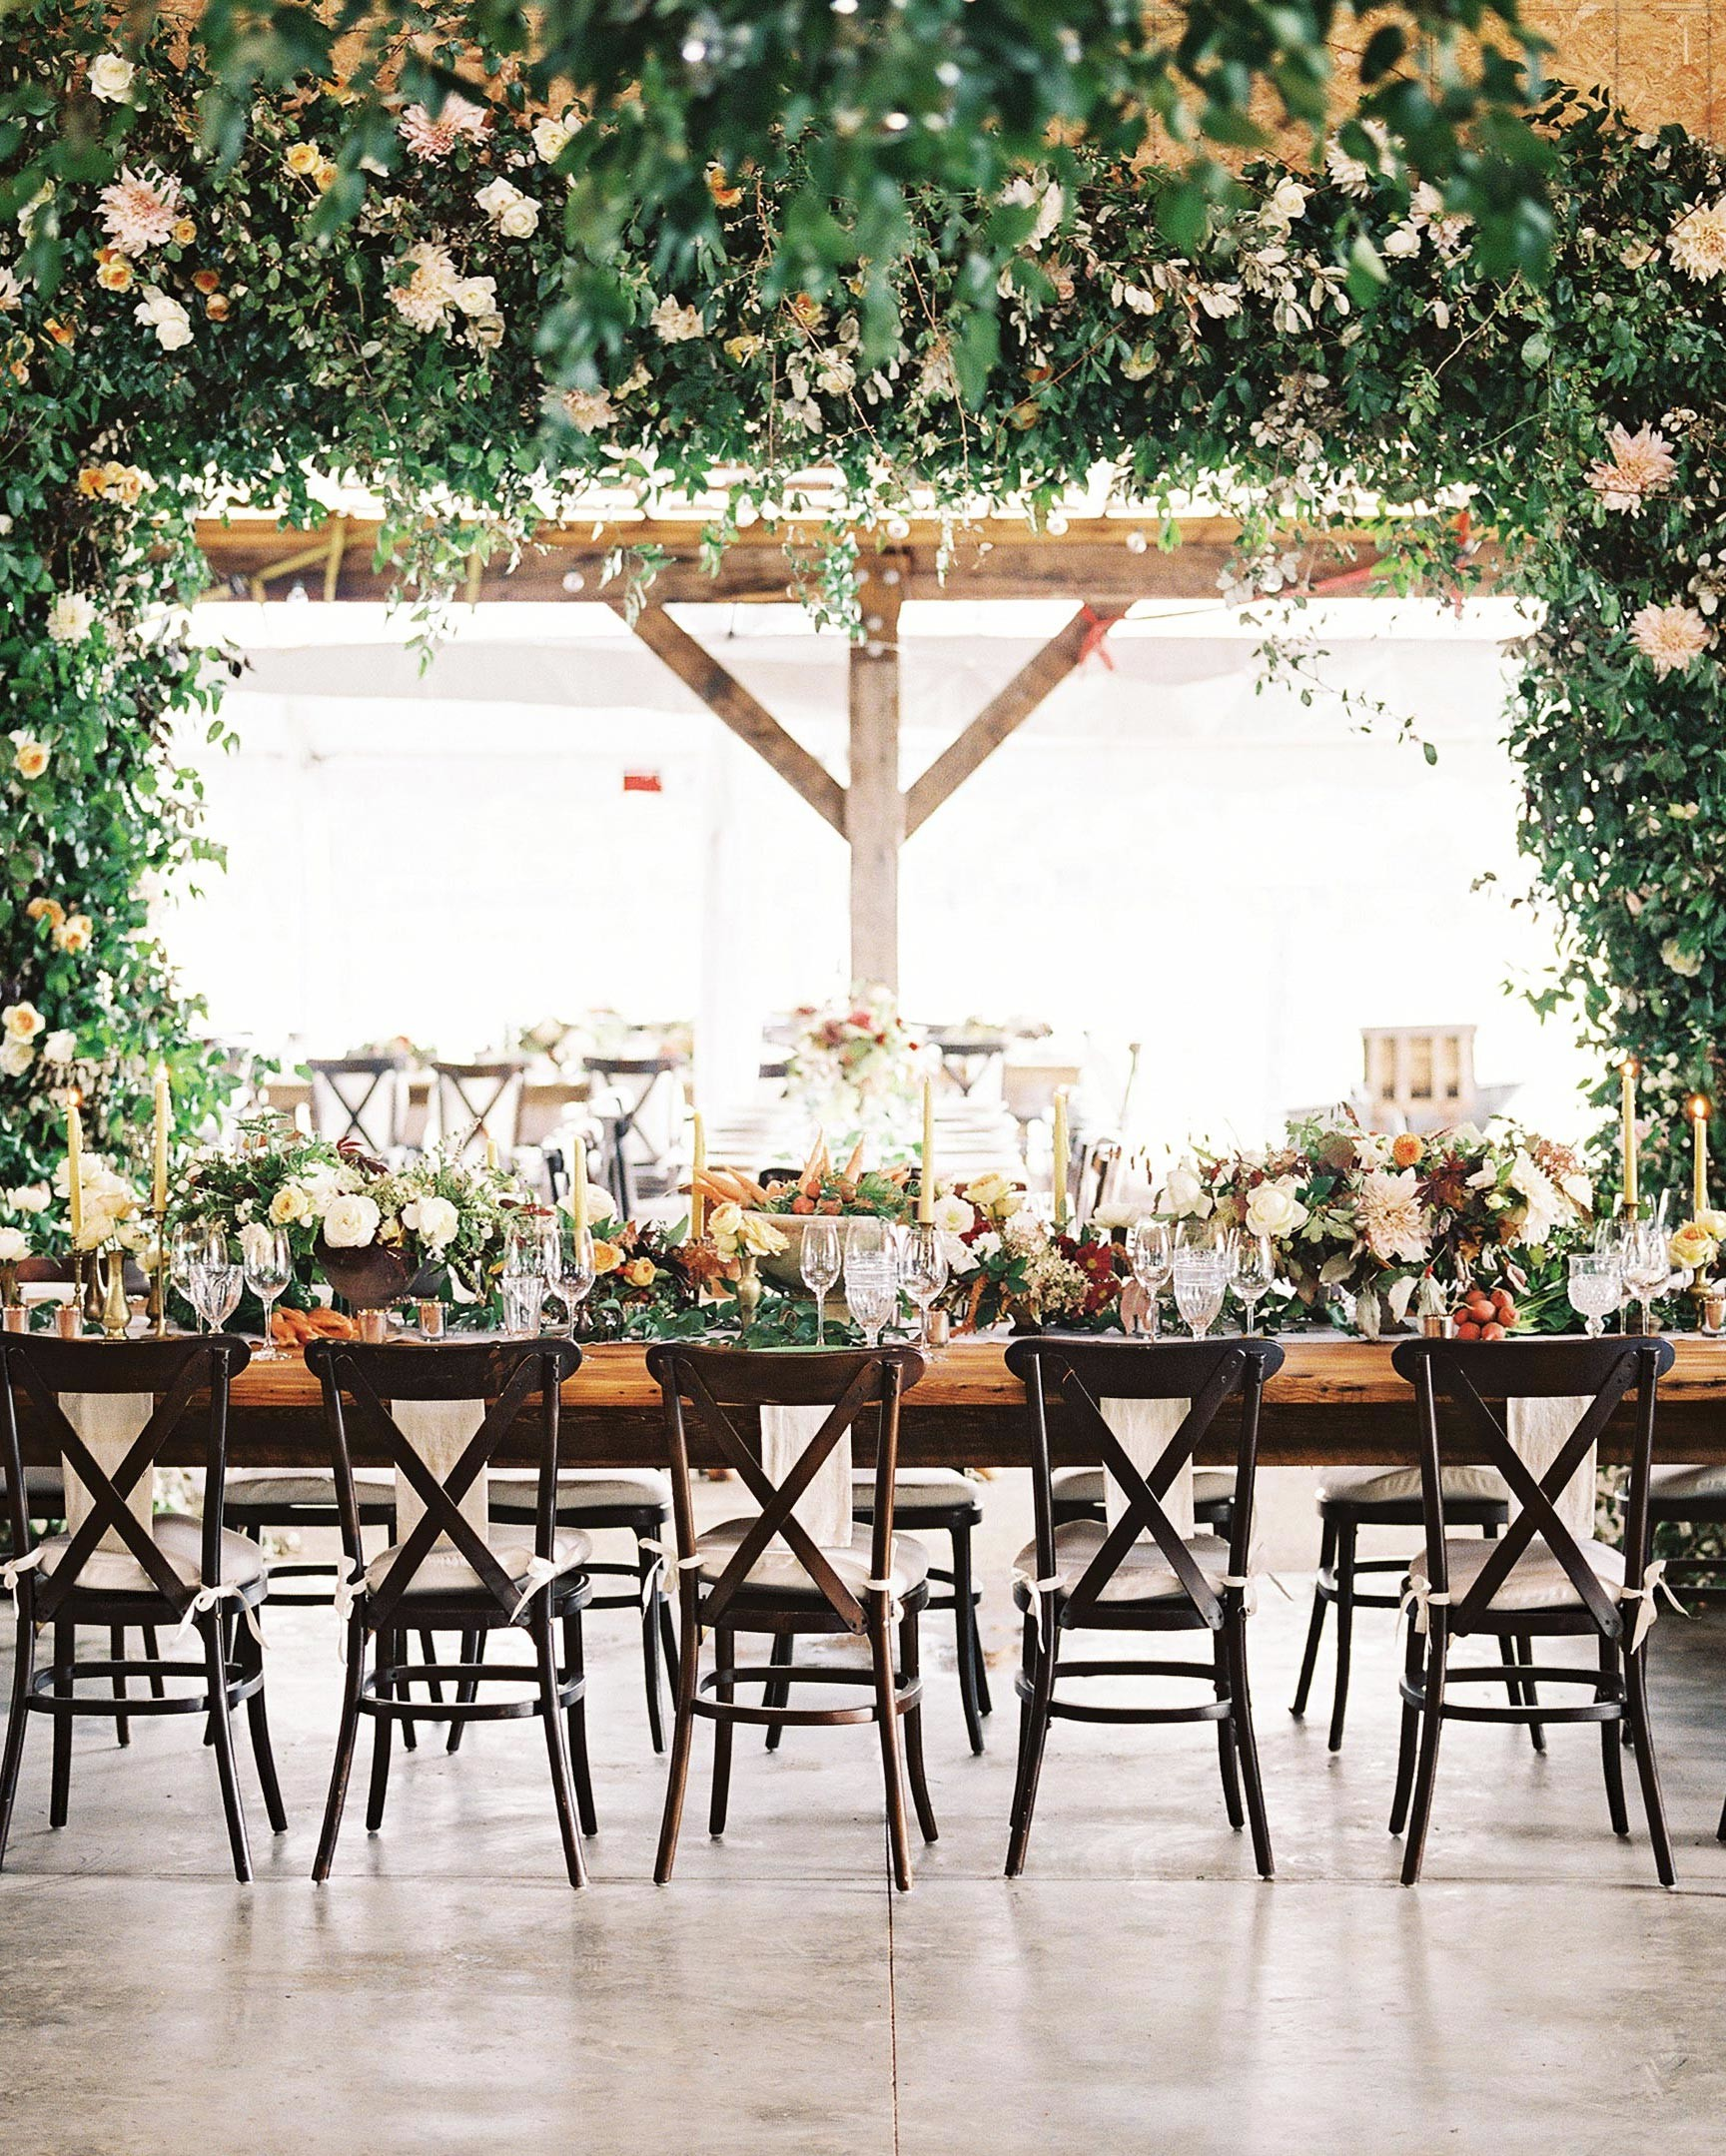 Evening Wedding Reception Decoration Ideas: 28 Ideas For Sitting Pretty At Your Head Table